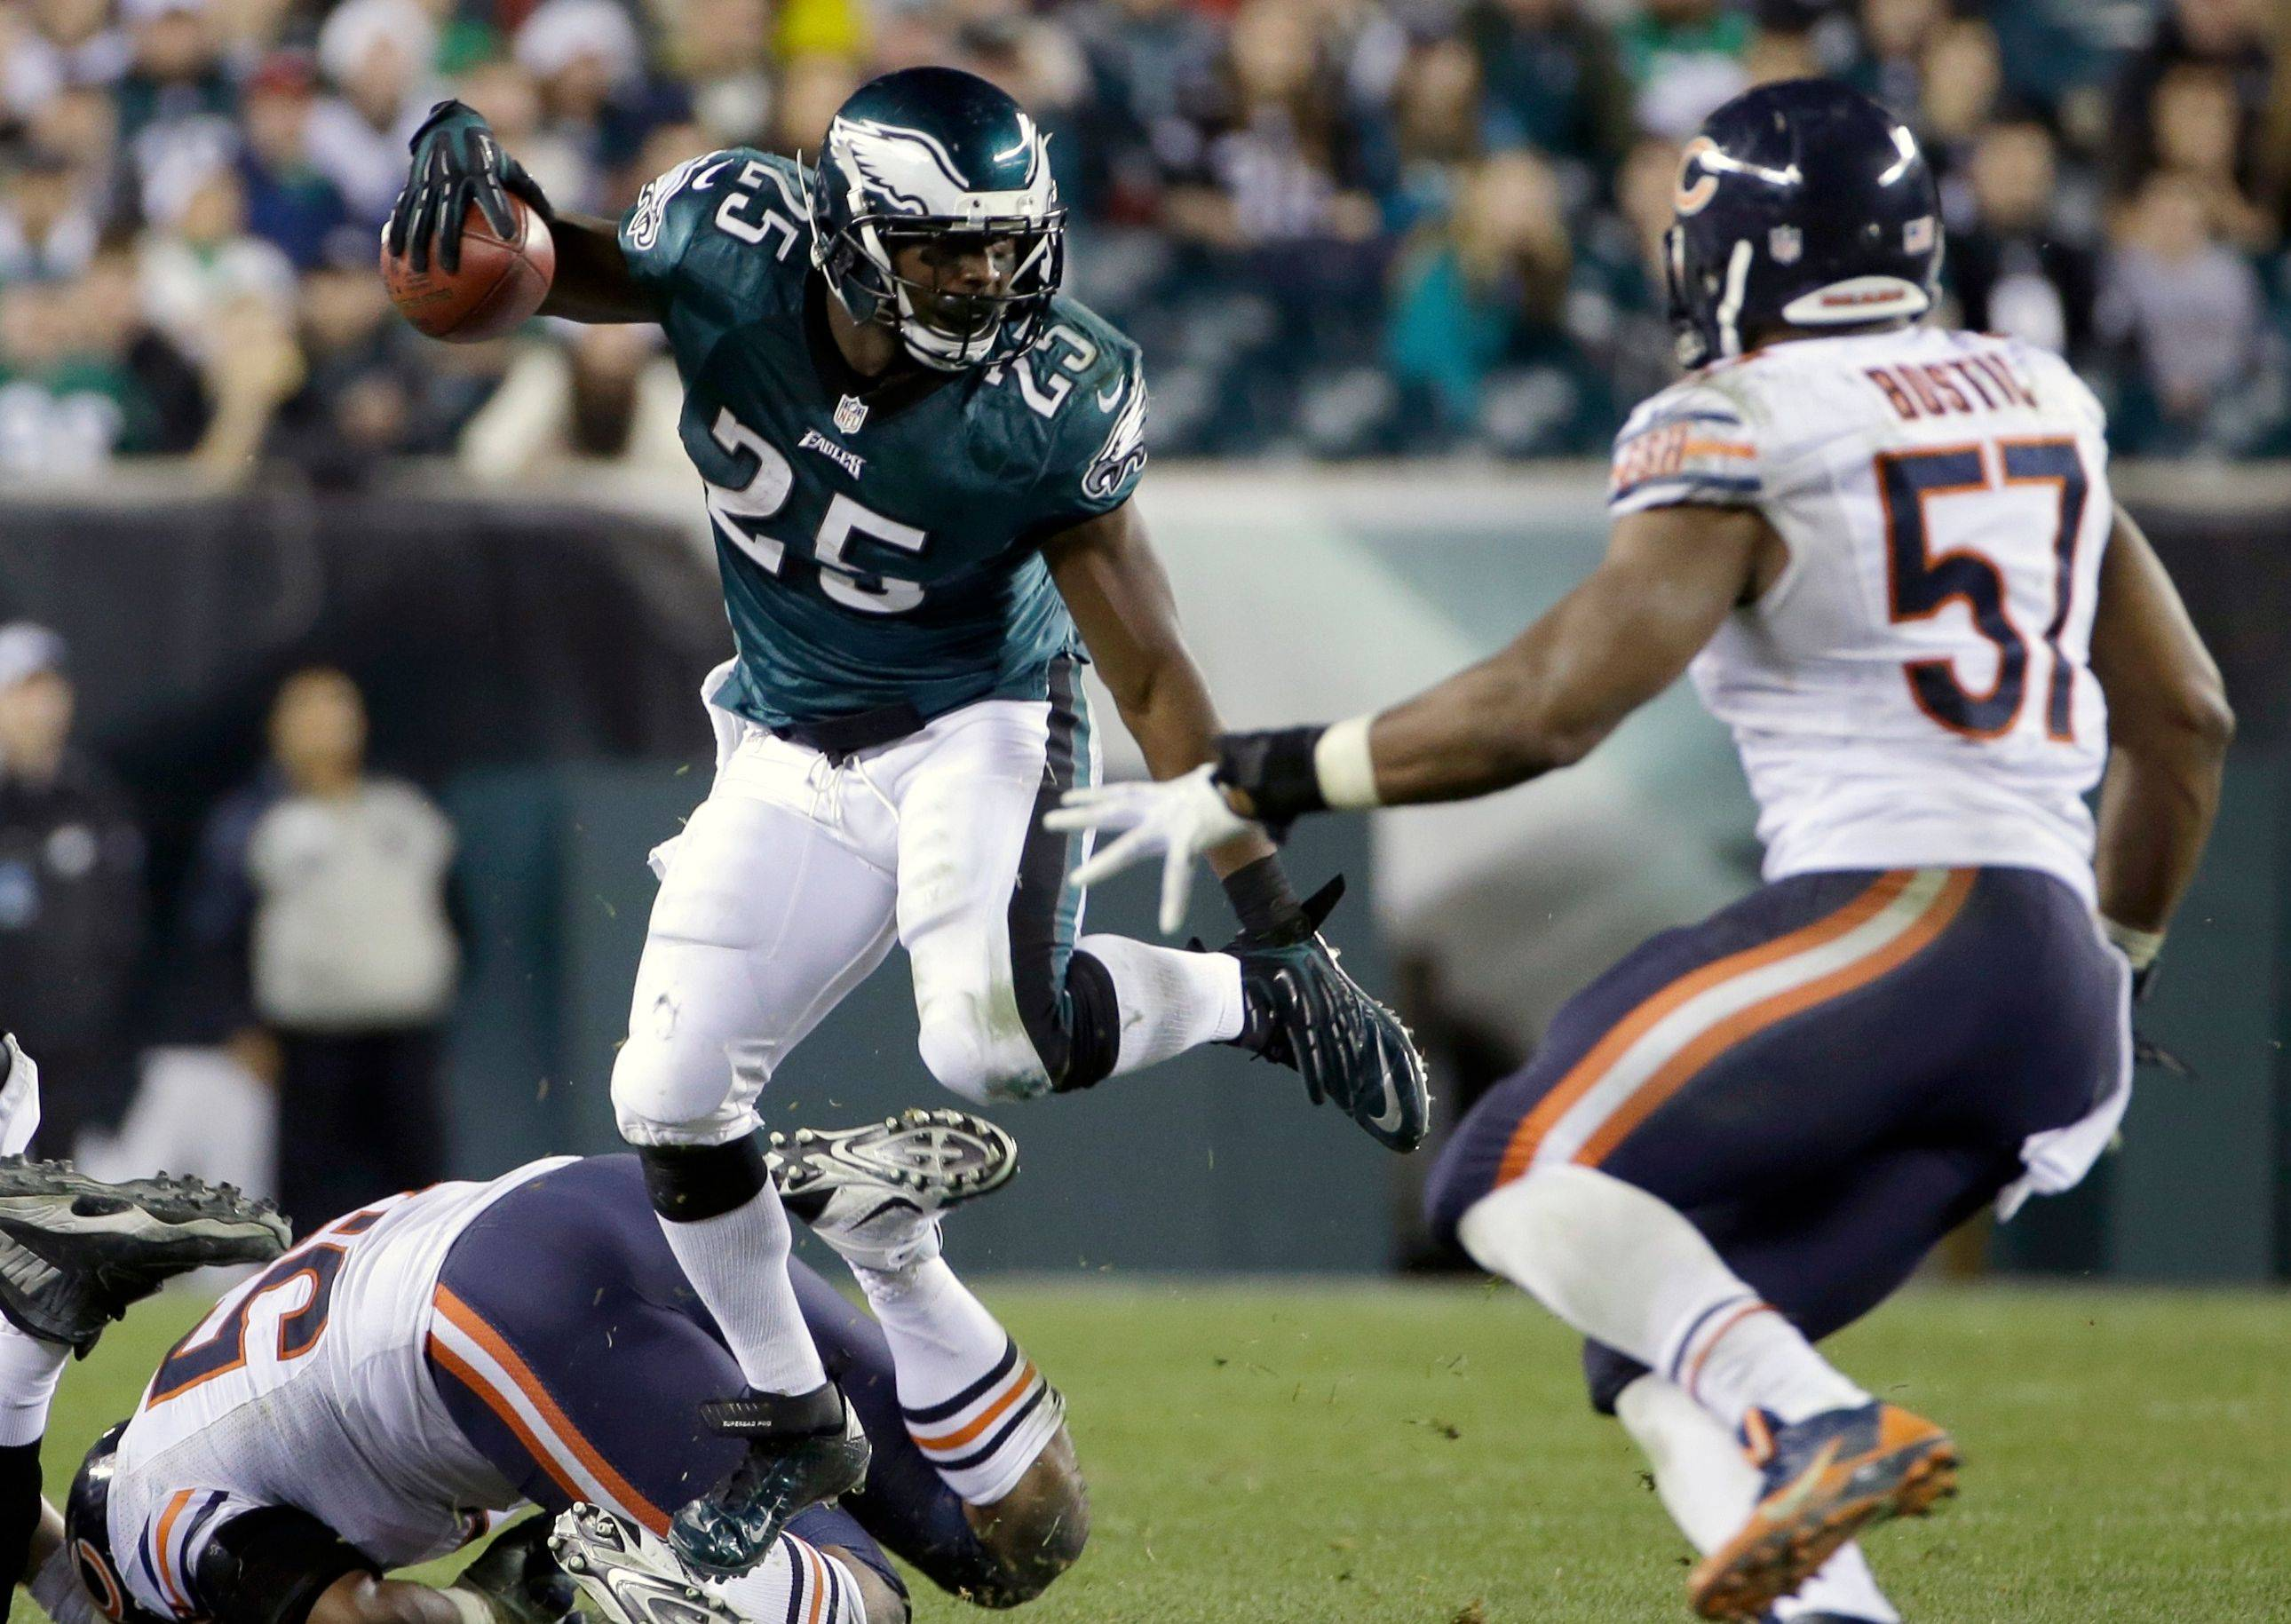 LeSean McCoy looks for room to run as Bears linebacker Jonathan Bostic attempts to close in during the Eagles' win Sunday. McCoy rumbled for 133 yards and now has 1,476 on the season.